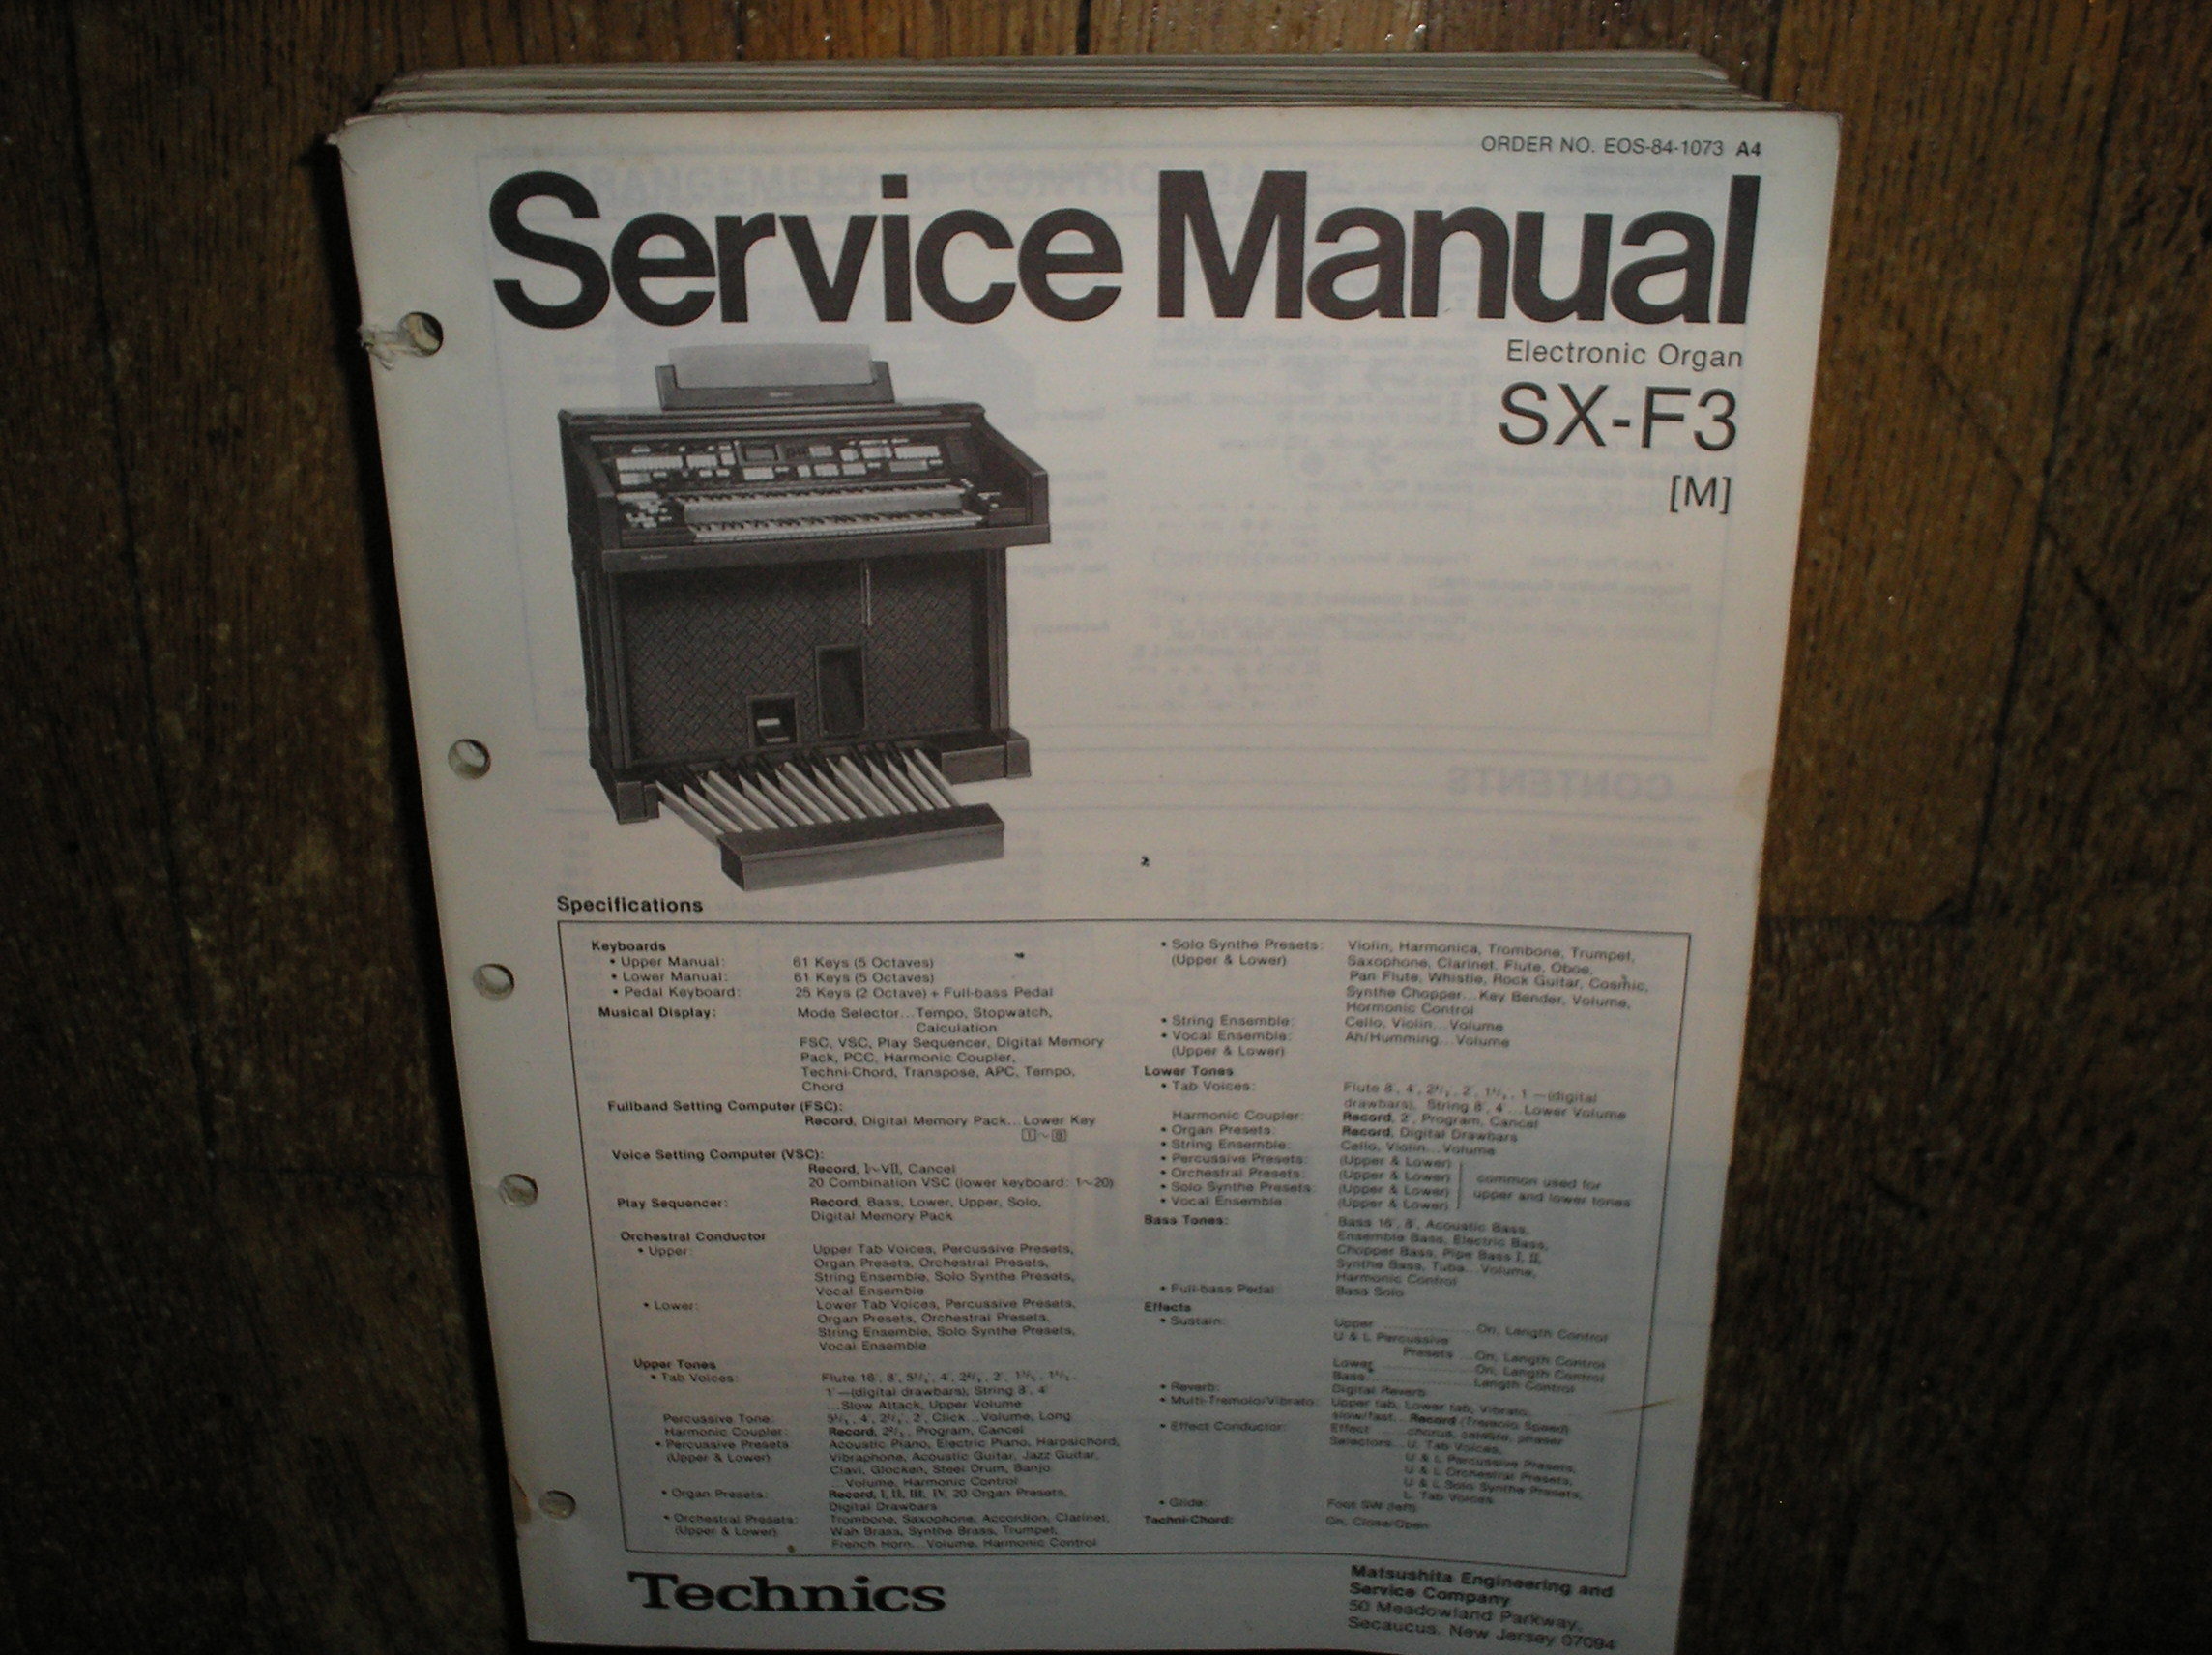 SX-F3 SX-F3M Electric Organ Service Manual